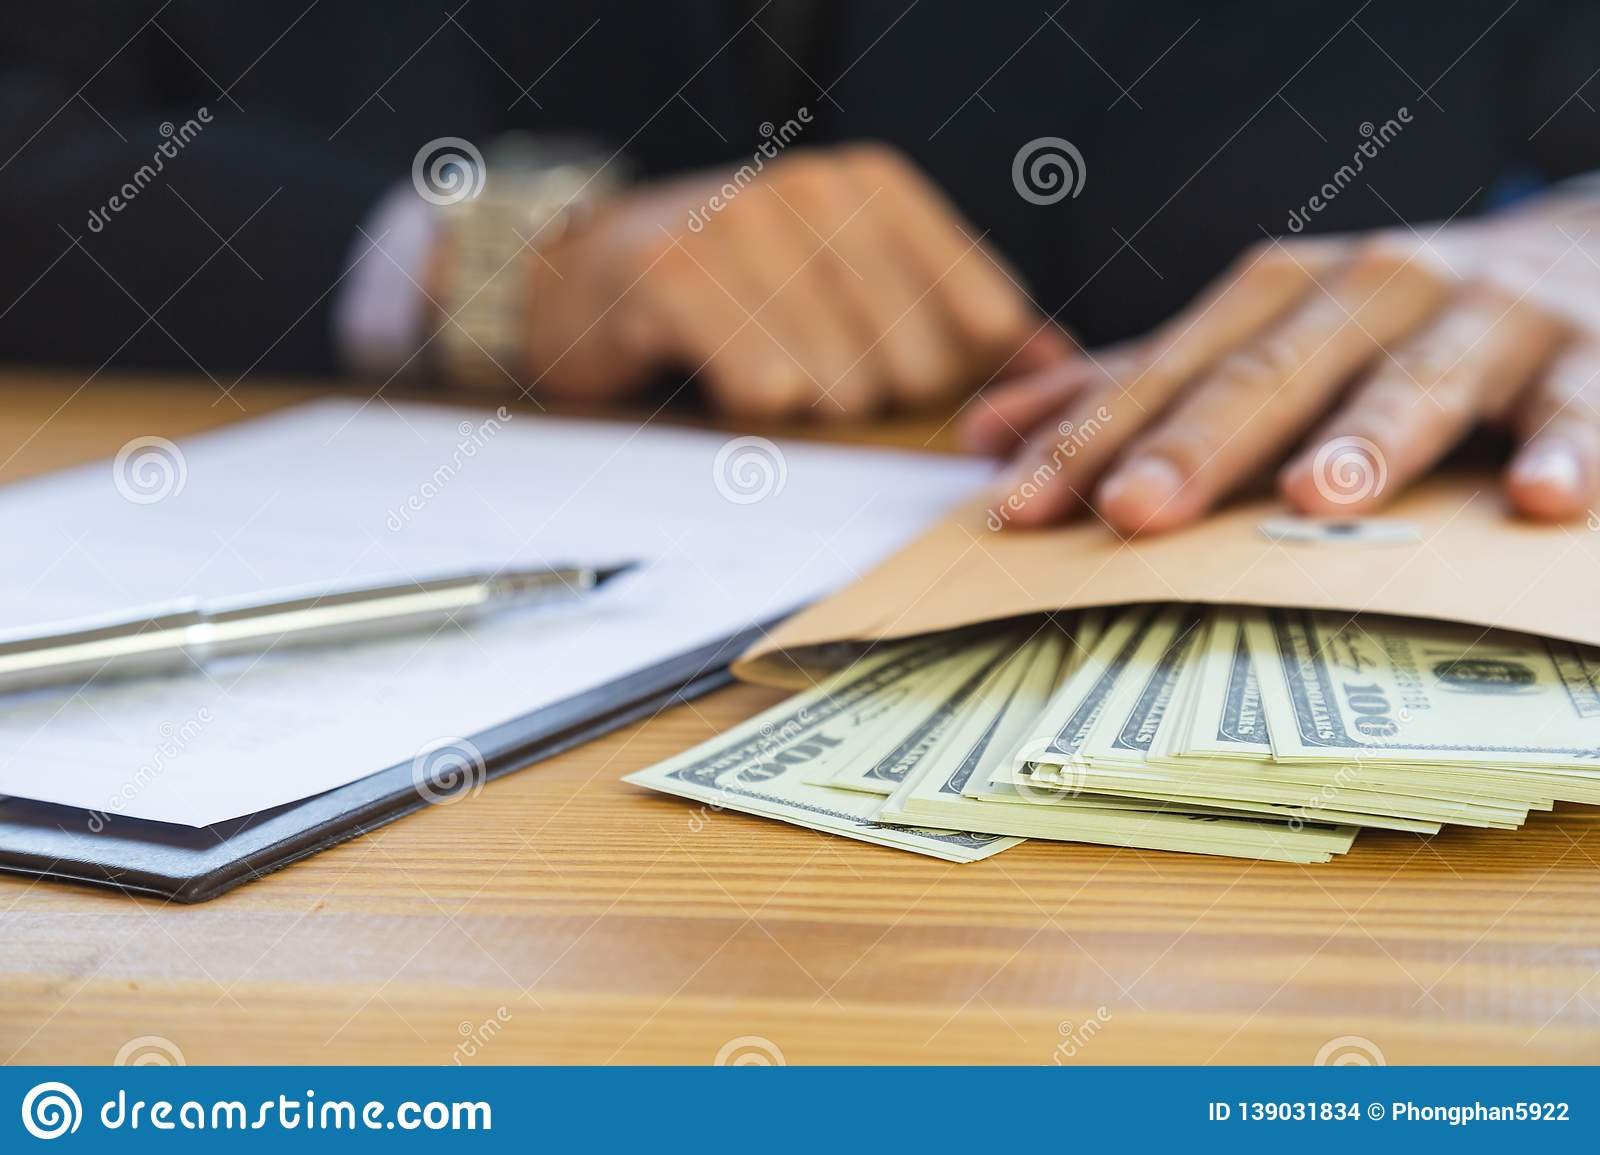 Business man signing a contract. Owns the business sign personally,director of the company, solicitor. Real estate agent holding